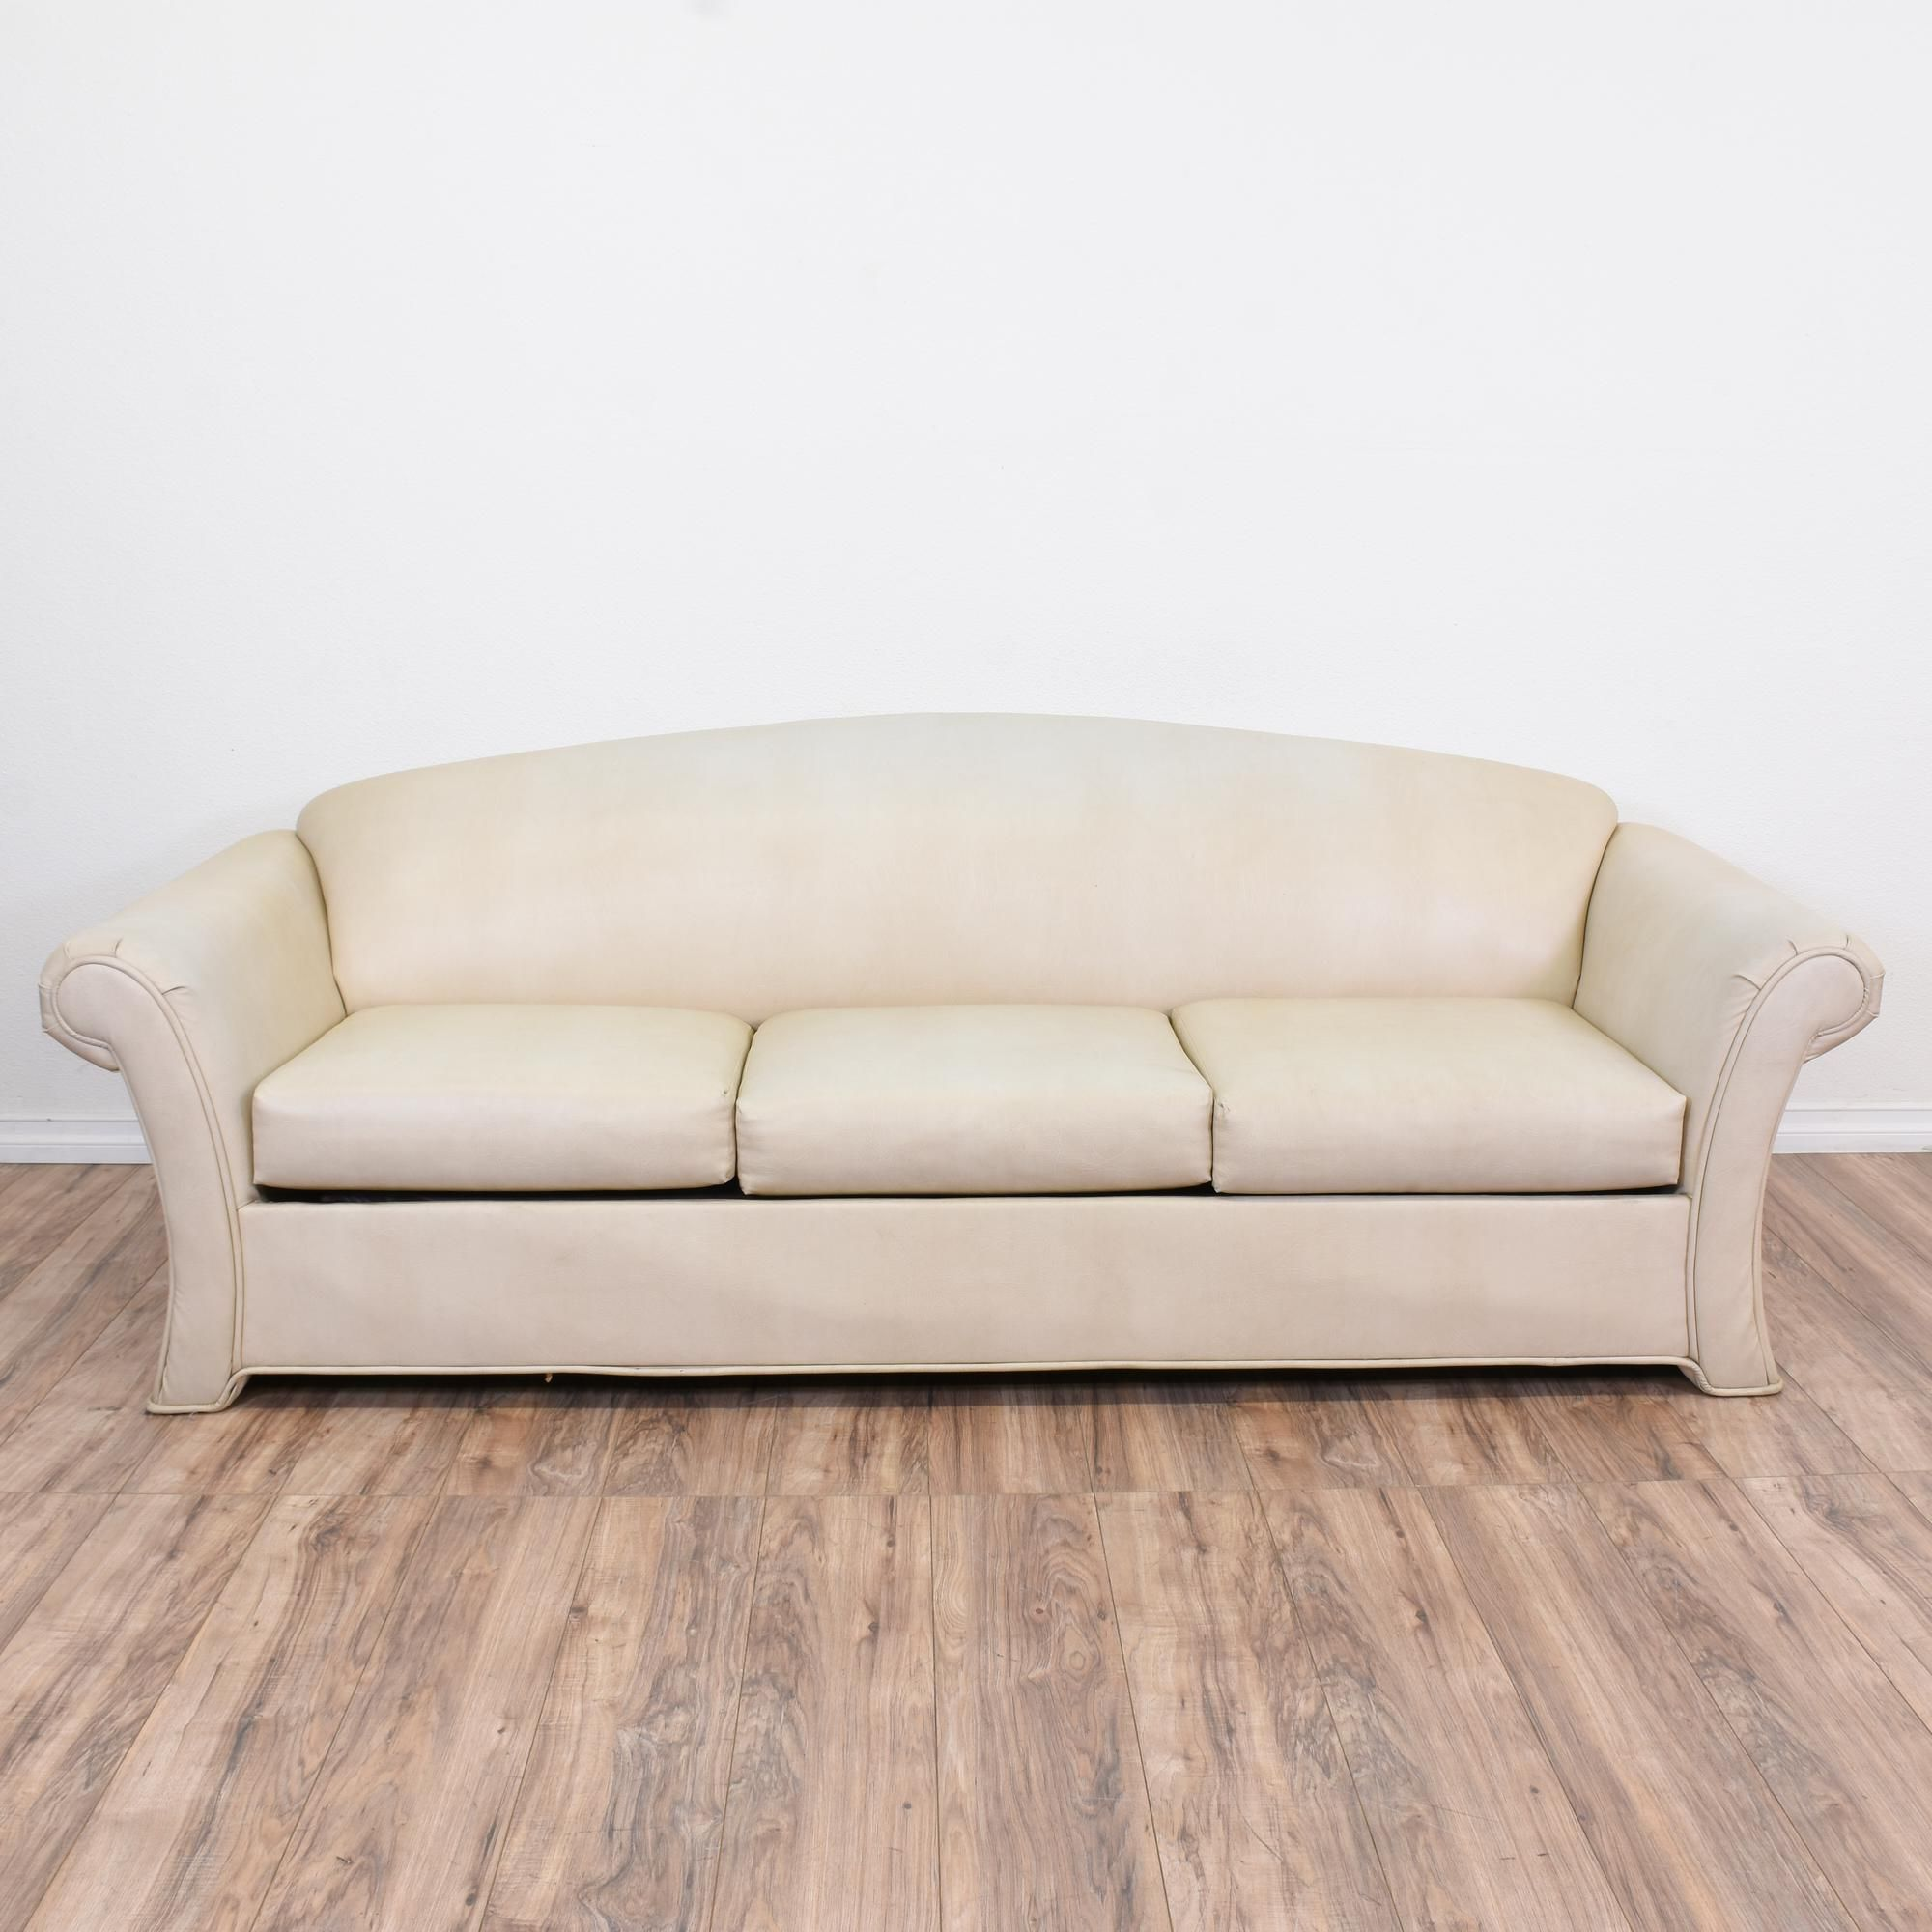 American Leather Sleeper Sofa Raymour Flanigan Best Rated Sectional Sofas This Is Upholstered In A Durable Off White